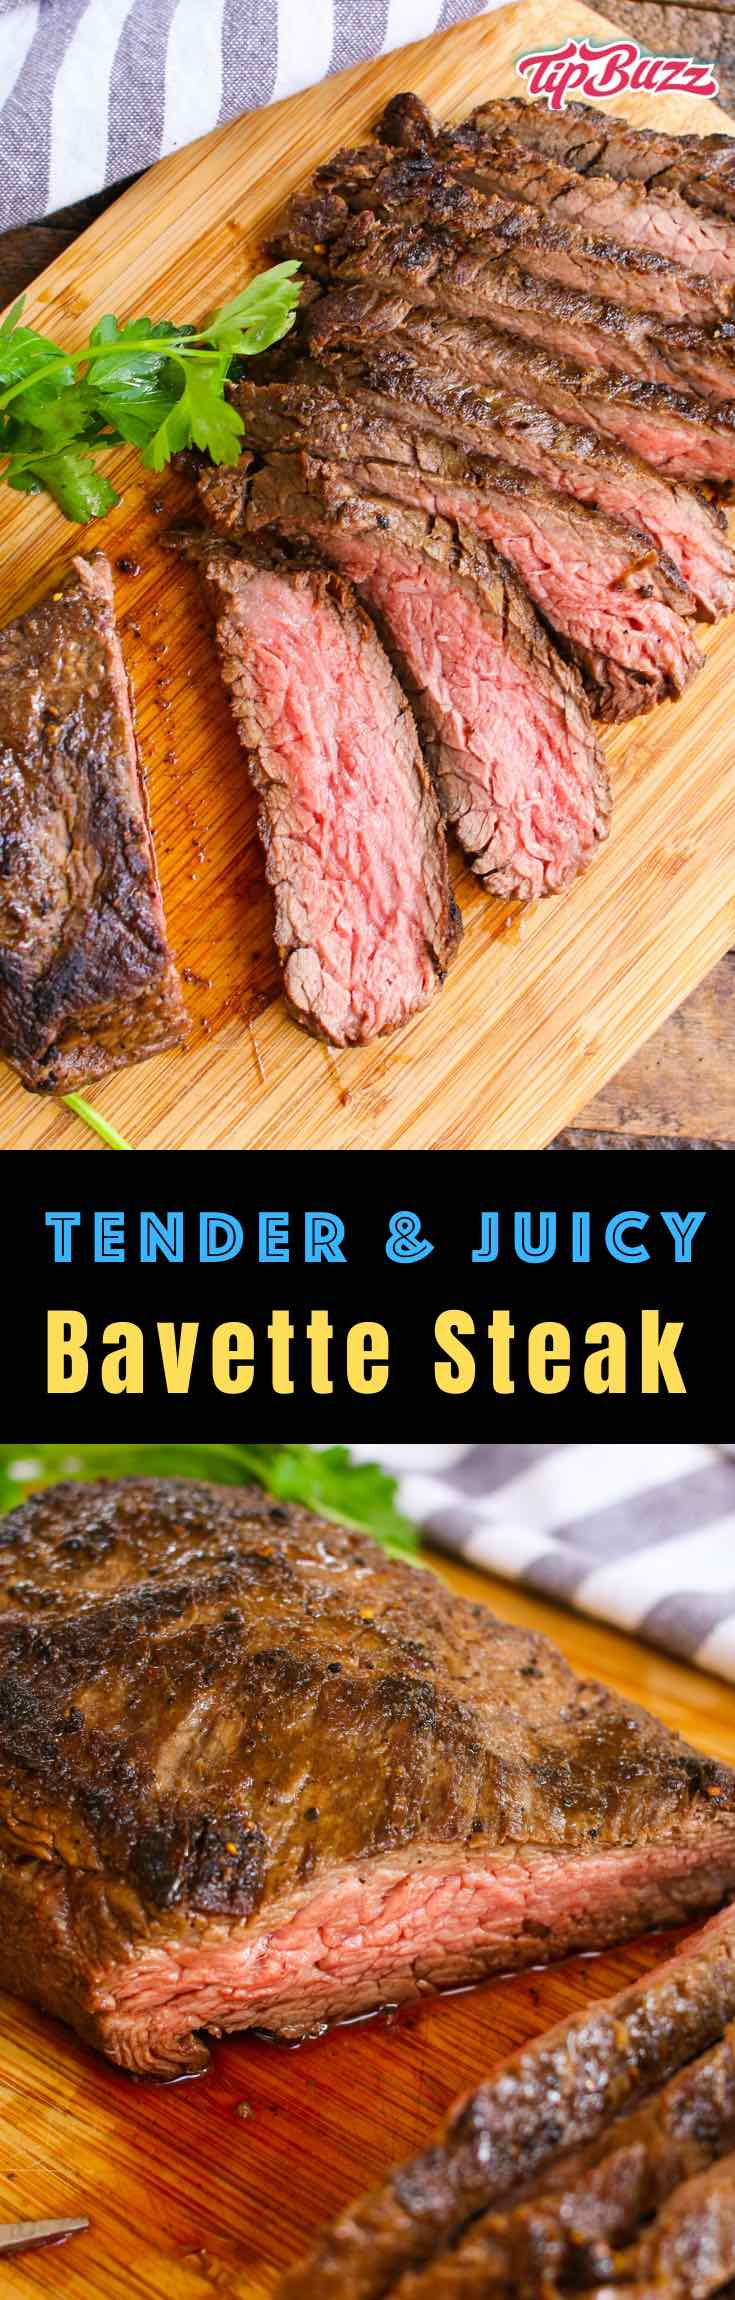 Bavette Steak is a lesser-known cut of beef that's juicy, flavorful and budget-friendly! This steak is easy to prepare whether you're grilling, pan-searing or cooking it in the oven.